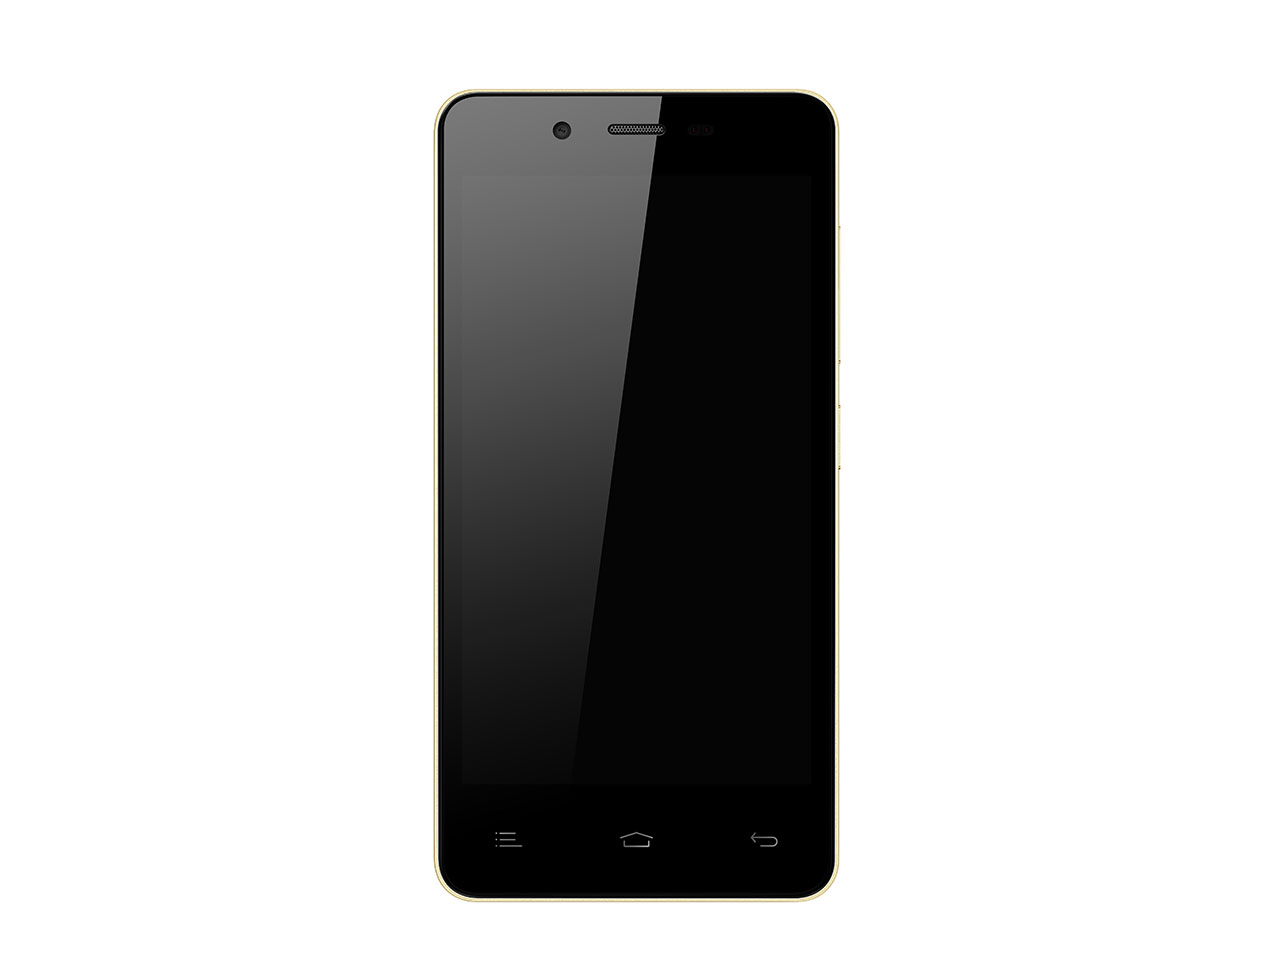 Gionee V183 front view